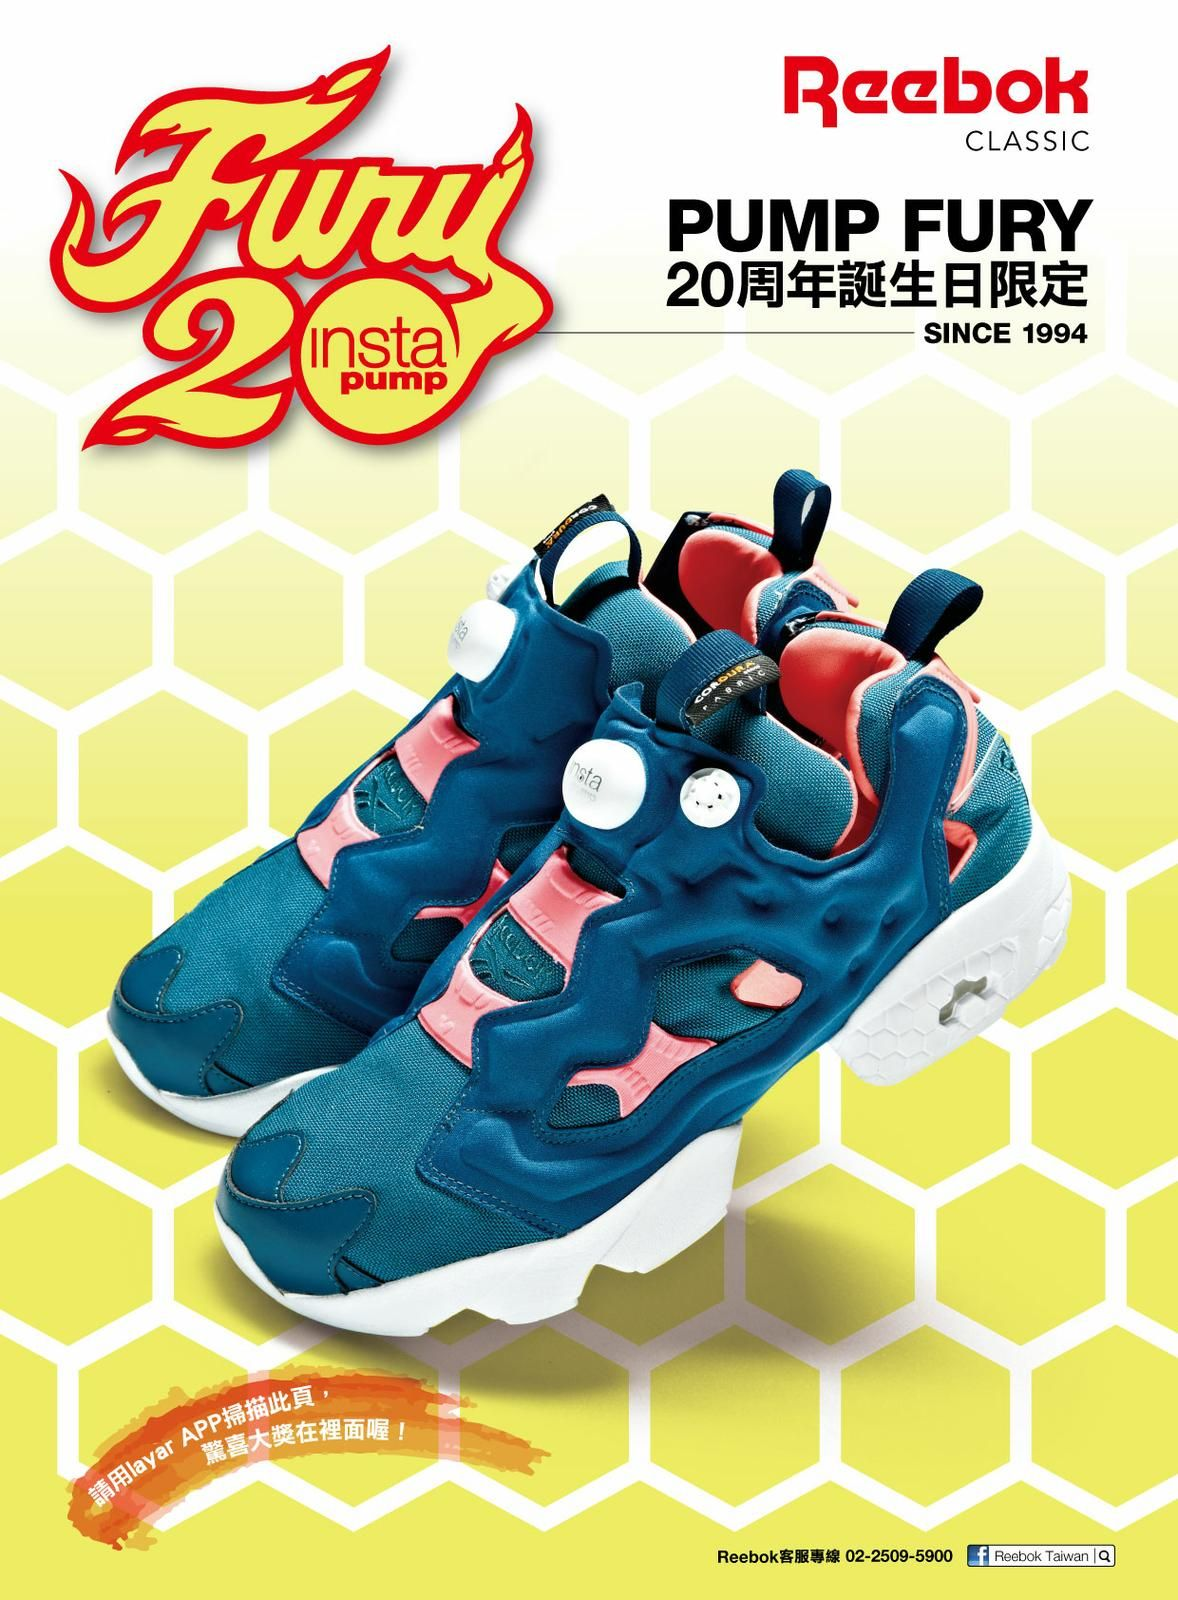 ... for a limited ed. of a  Reebok USA shoe to celebrate the 20th  anniversary.  Layar and Kenlu.net also collaborated in this classic Reebok  Pump Fury. 783d94e22a96b